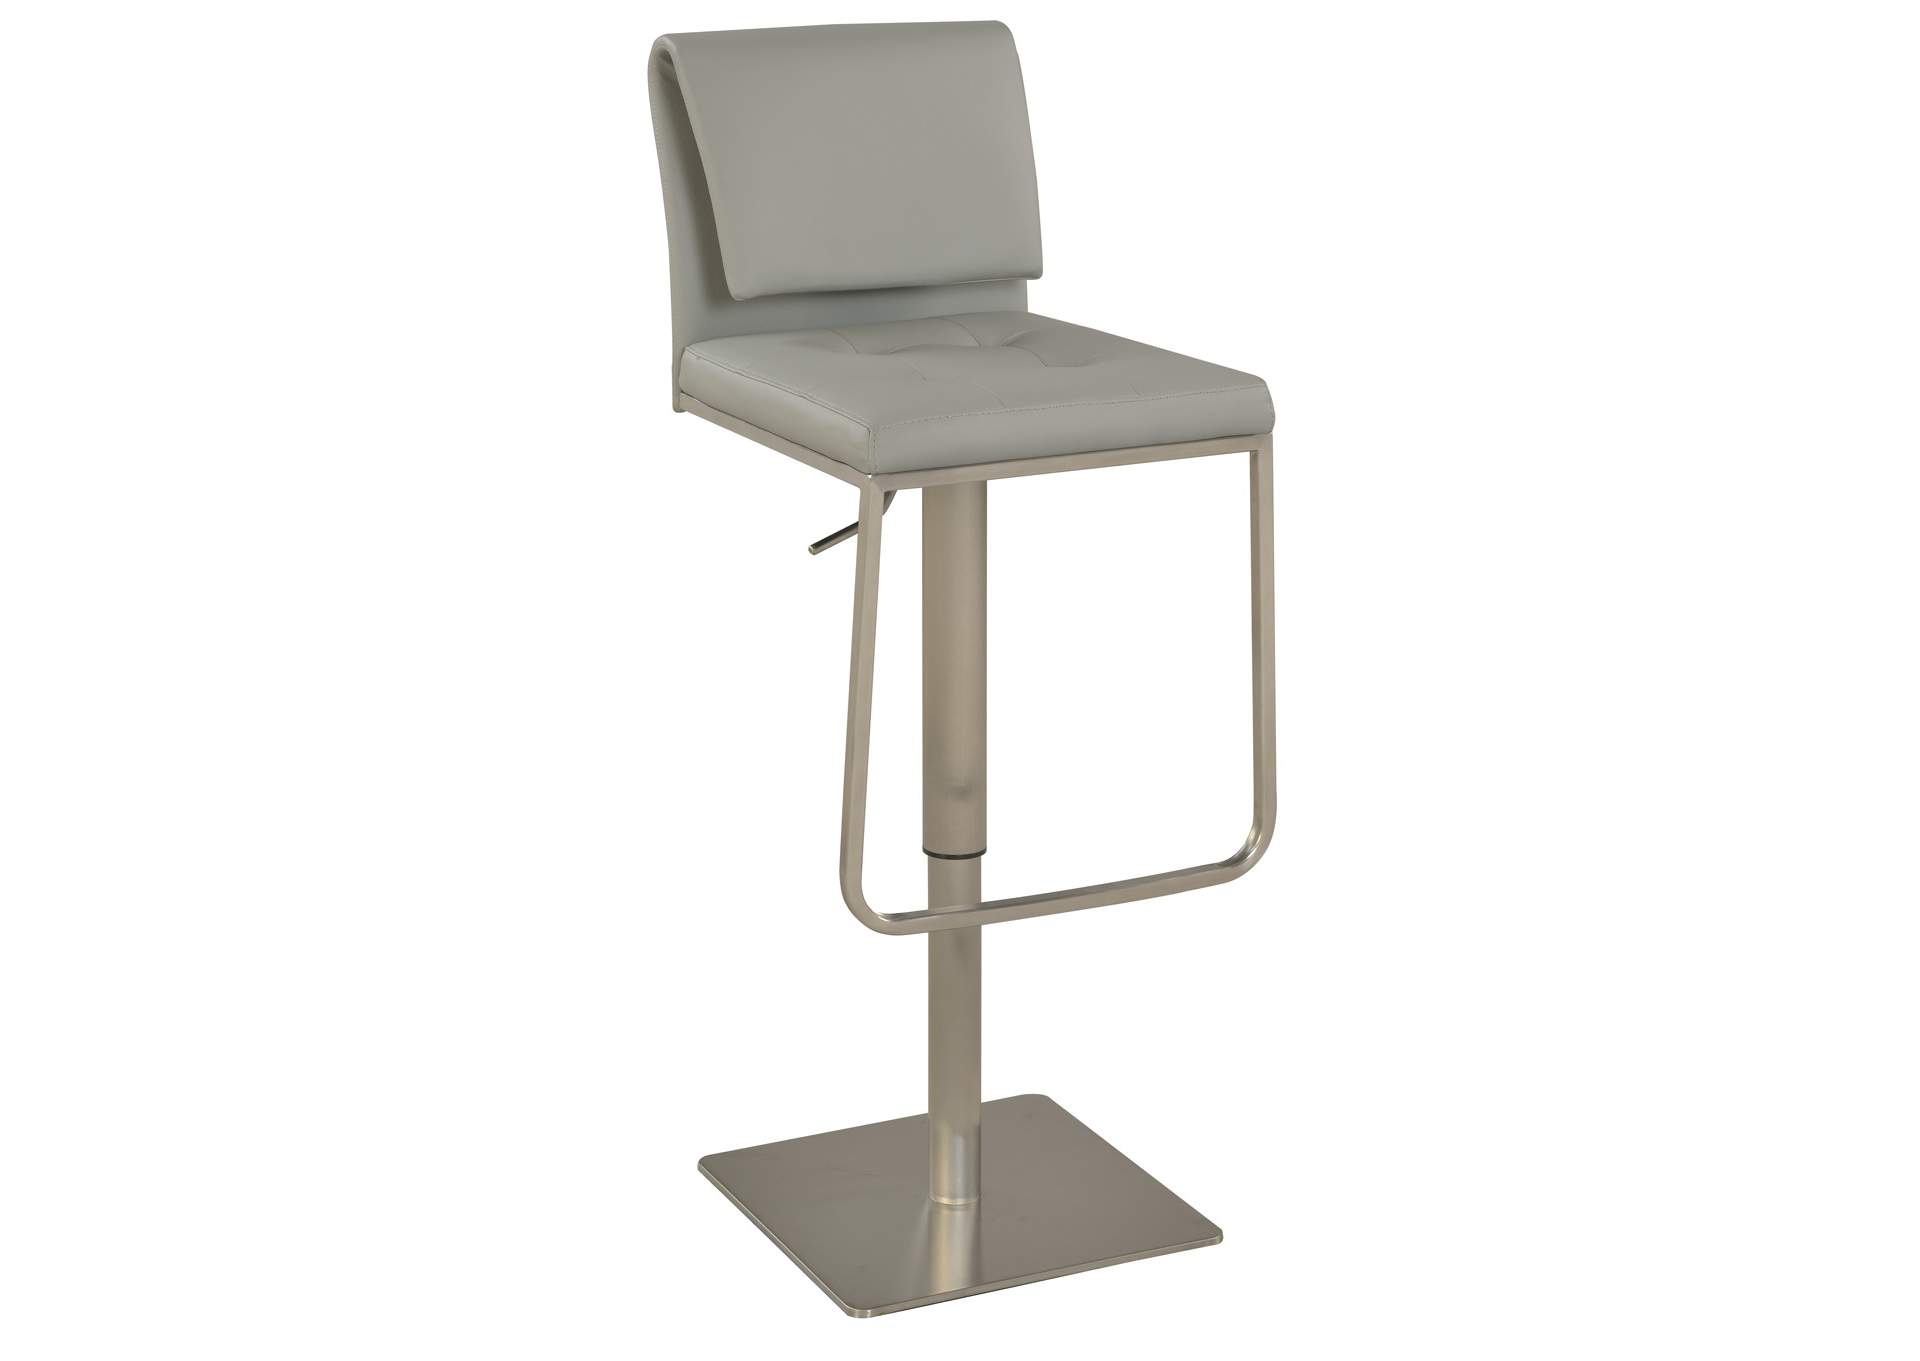 Grey Pneumatic Stool,Chintaly Imports